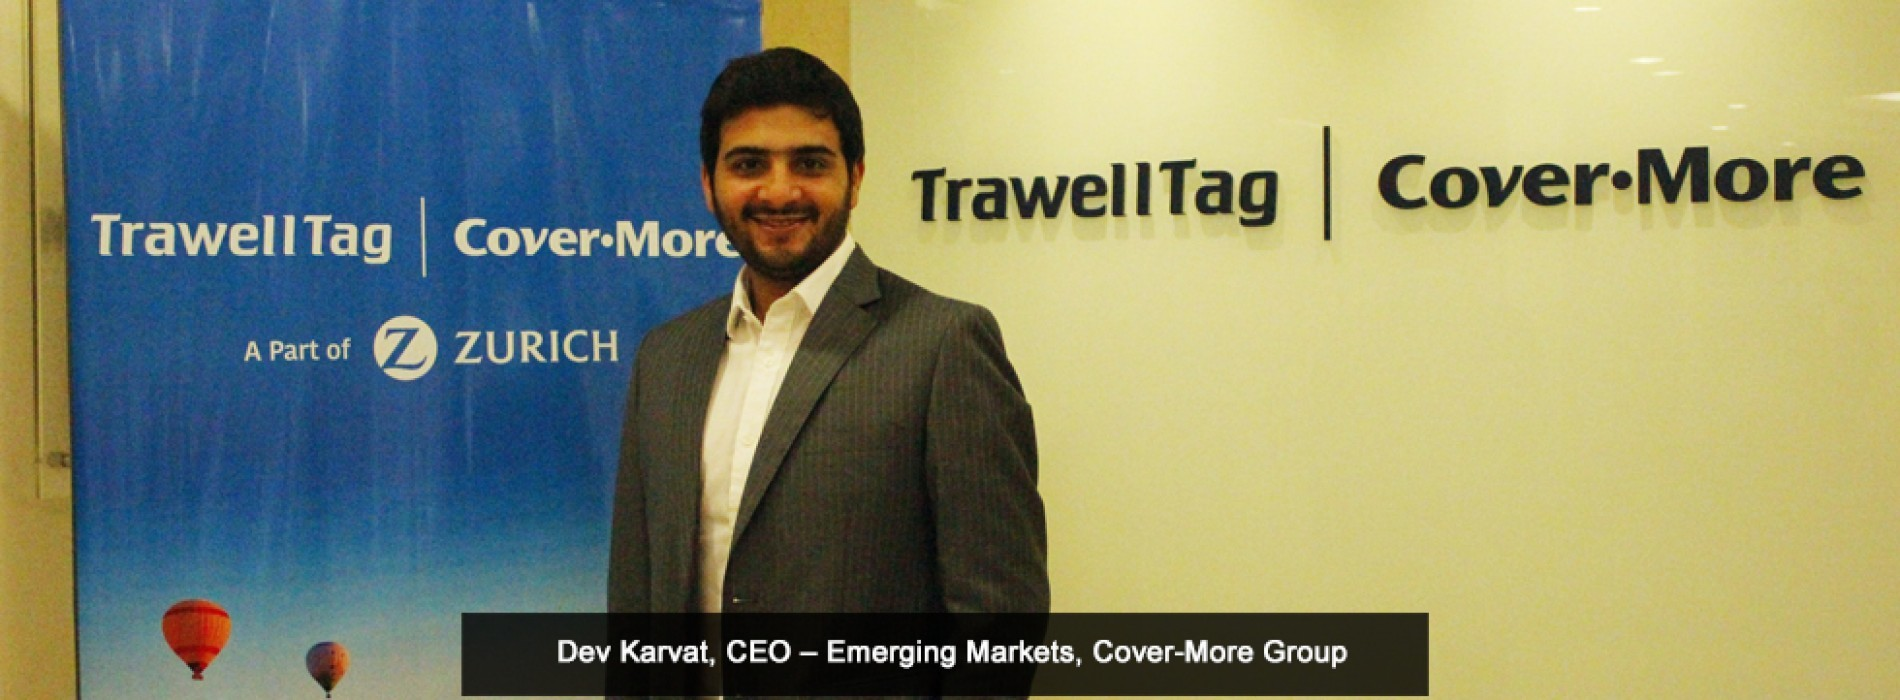 ITH partners with TrawellTag Cover-More